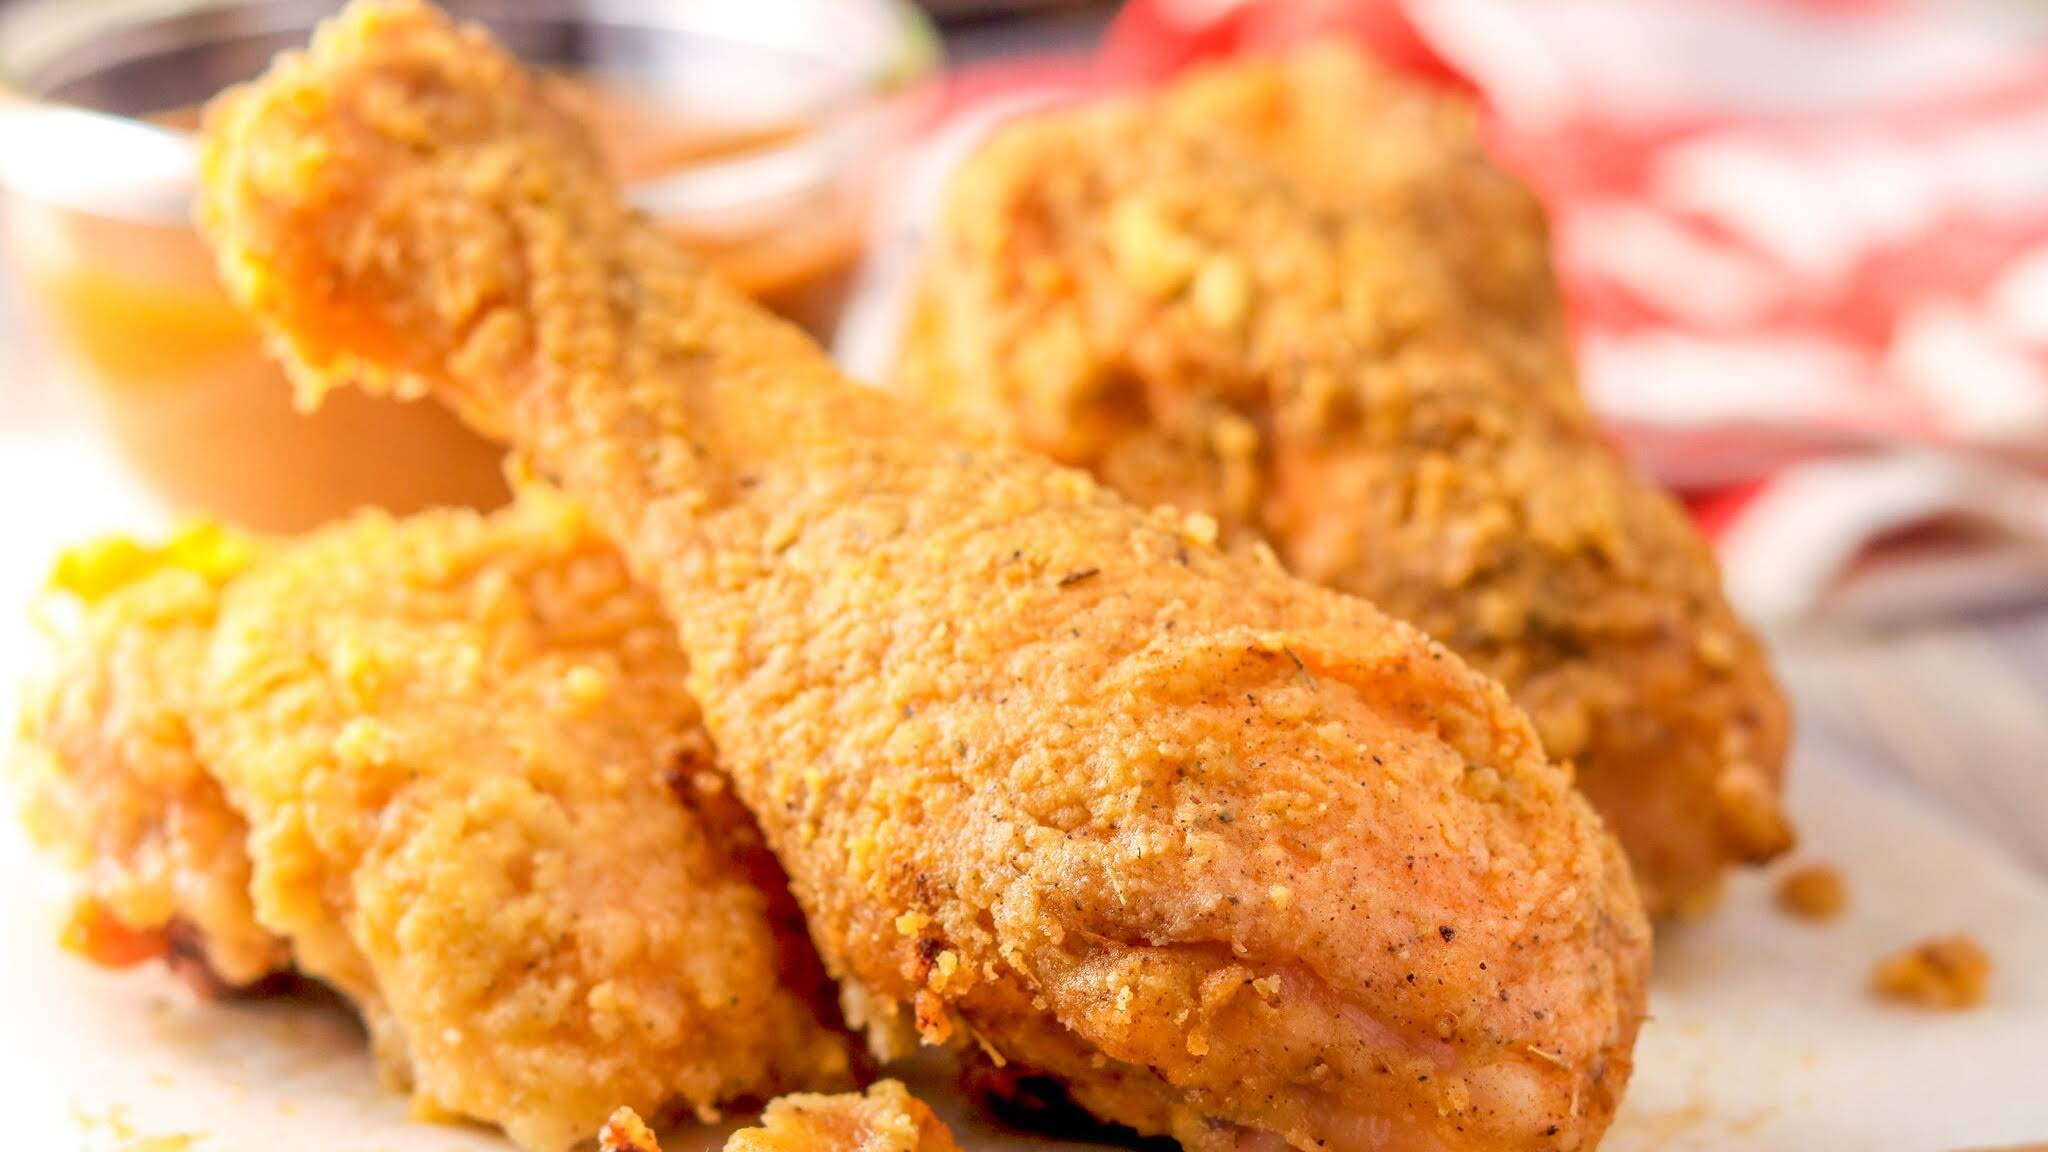 Buy Fresh, Delicious Chicken Meat Online - Beck and Bulow